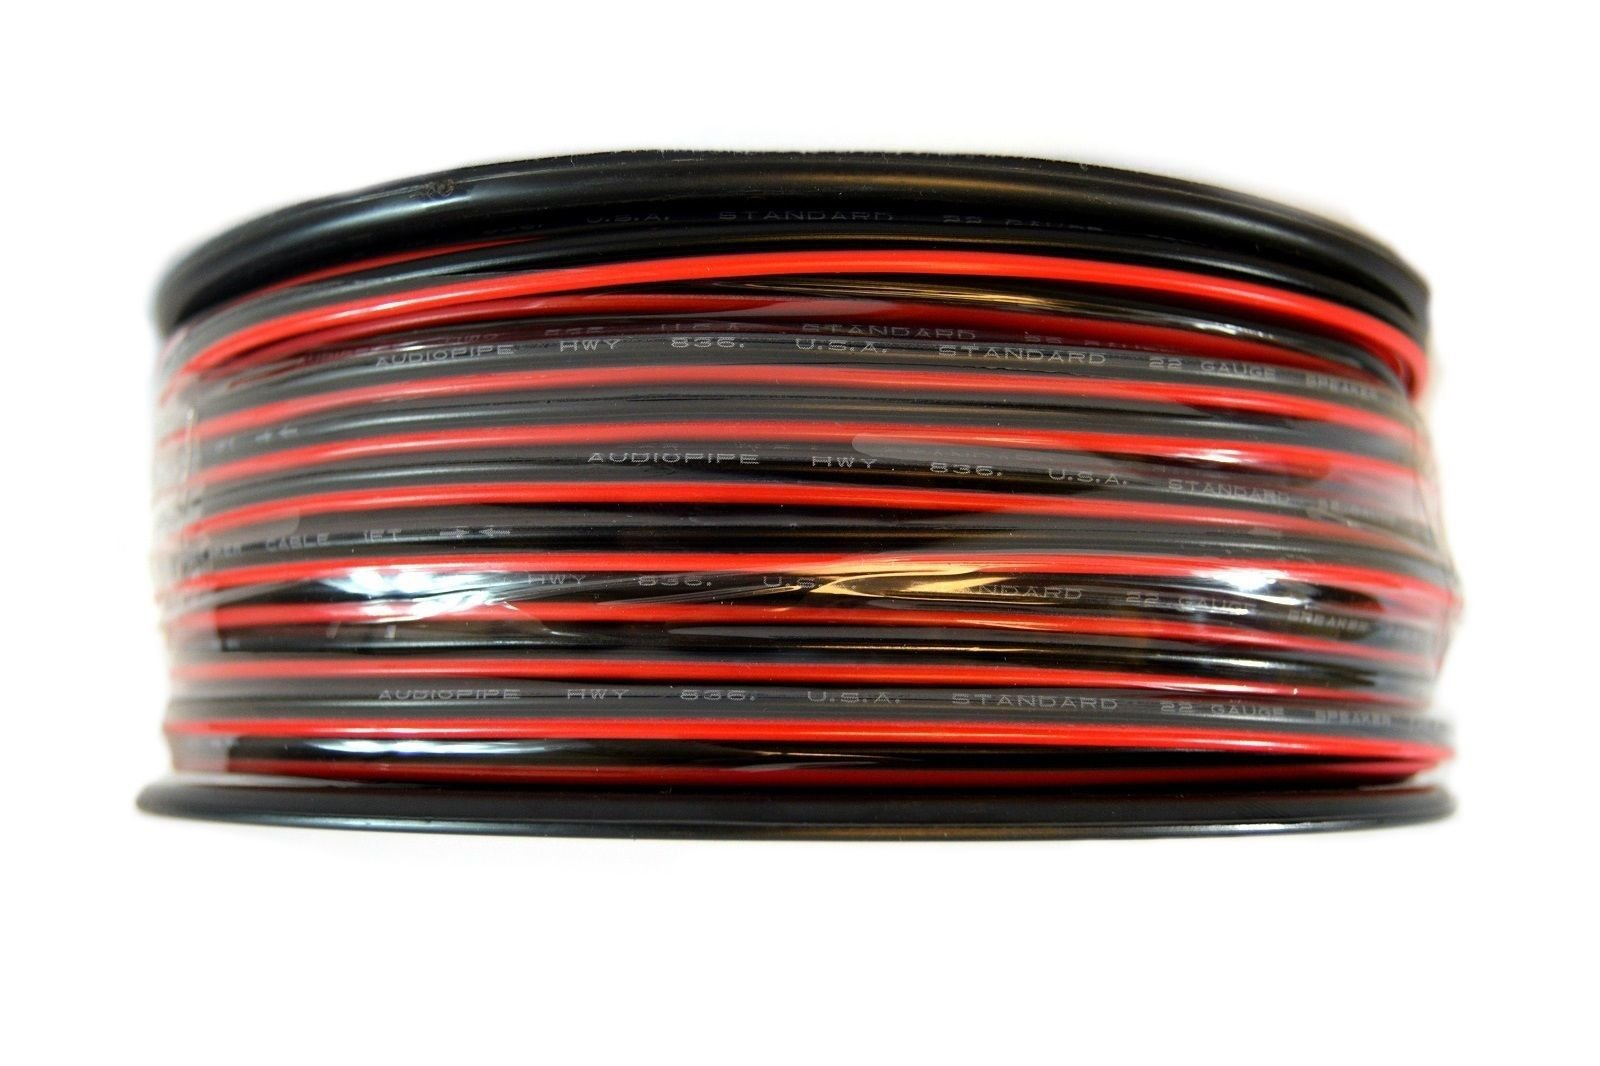 Speaker Wire 22 GA 250 Feet Red Black Stranded Copper Clad Home Audio Sound by Audiopipe (Image #3)